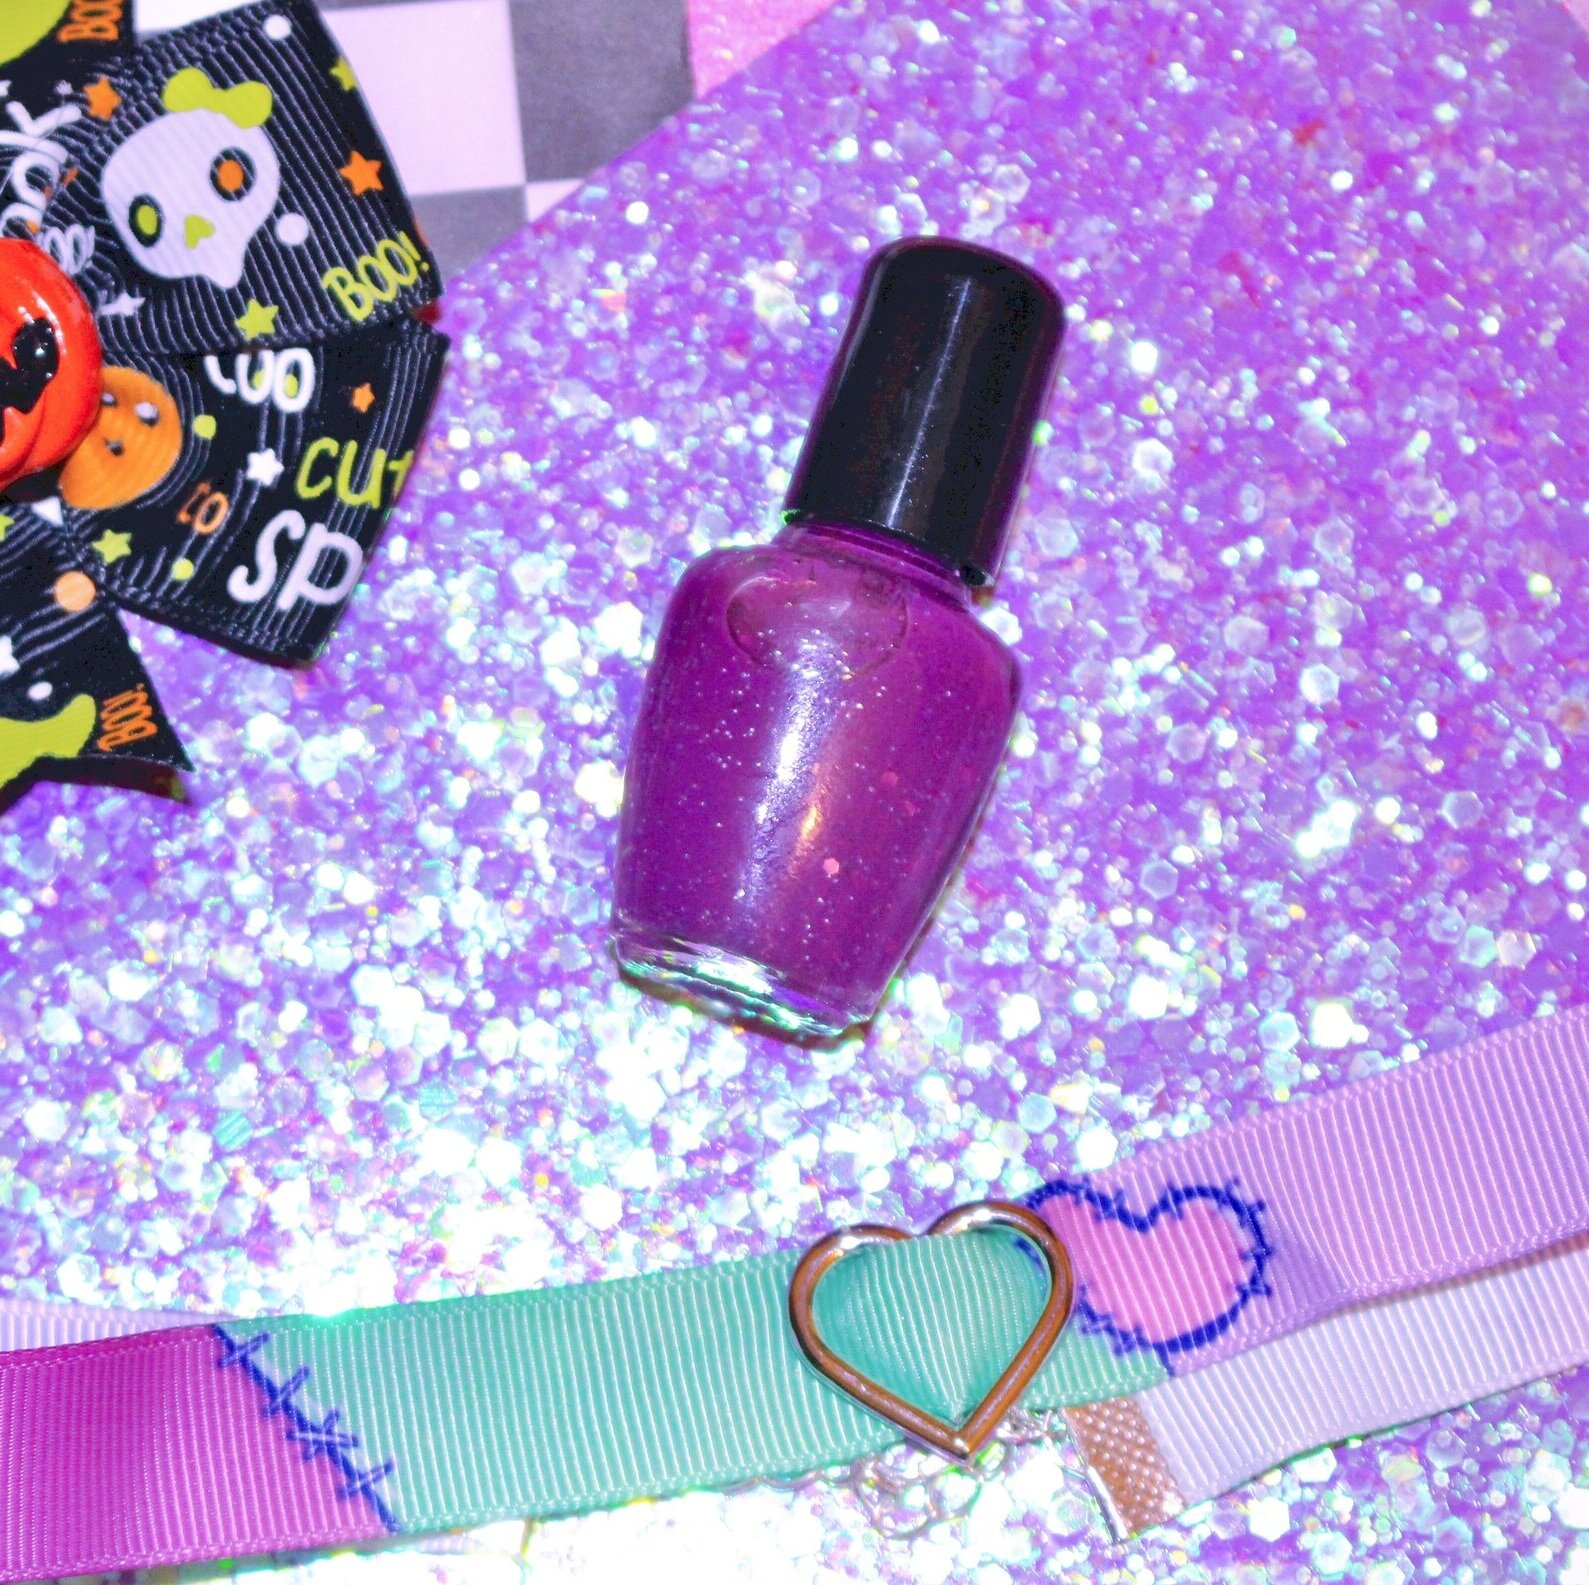 """""""Zombie Blood""""Nail Polish - Live kawaii, die kawaii. This rich purple nail polish features pink and silver glitters that can bring anyone back to life! Made by Pixel Spa, a small Texan beauty product seller. 💅😍"""